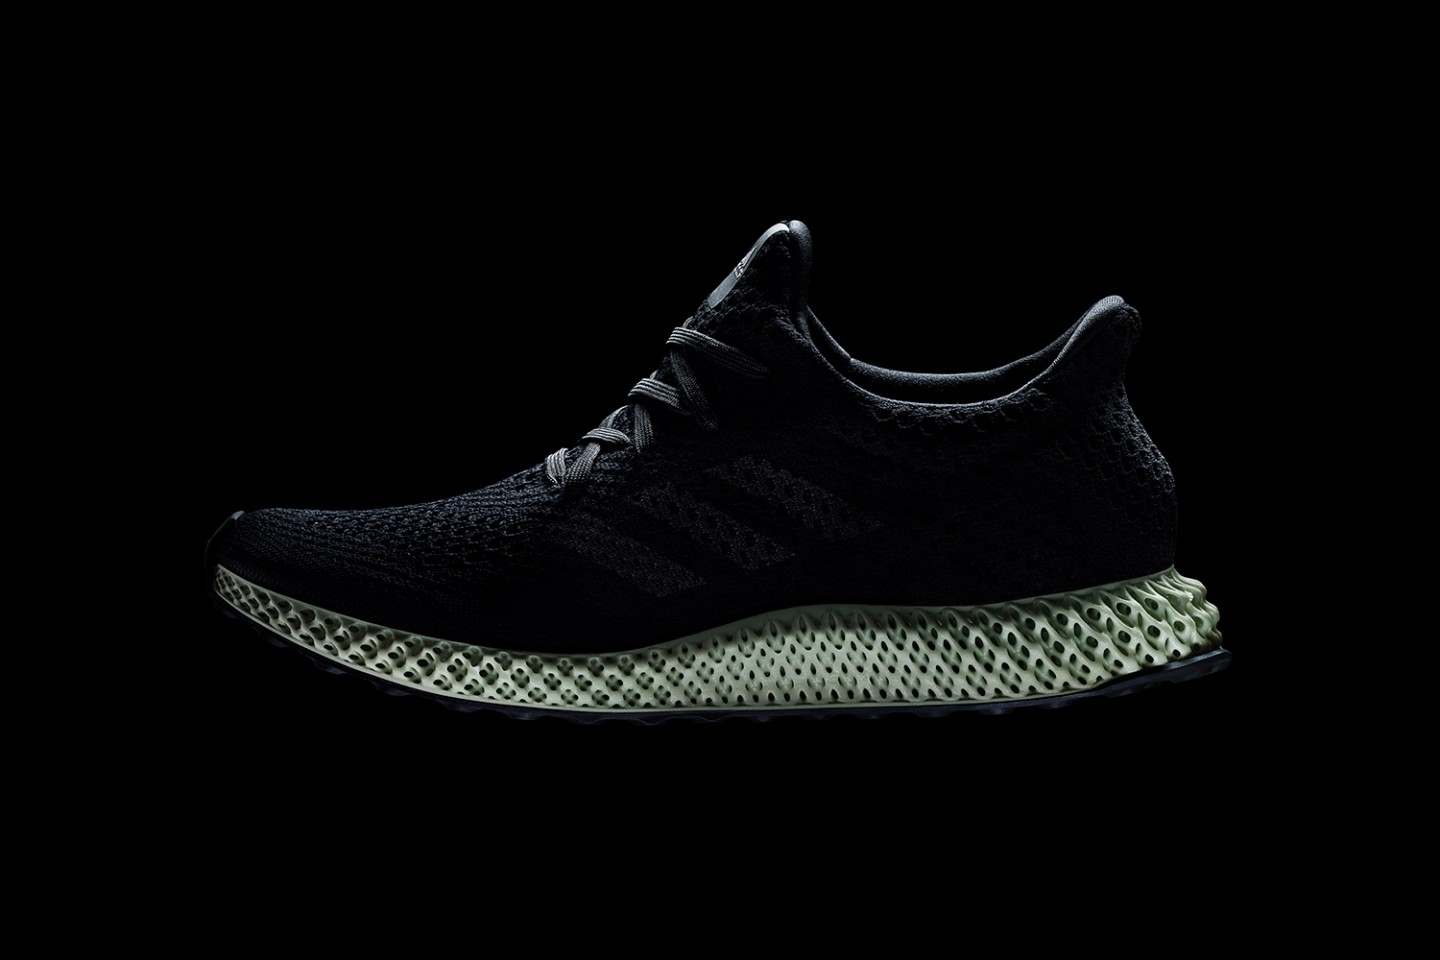 adidas Futurecraft 4D: the future is now!